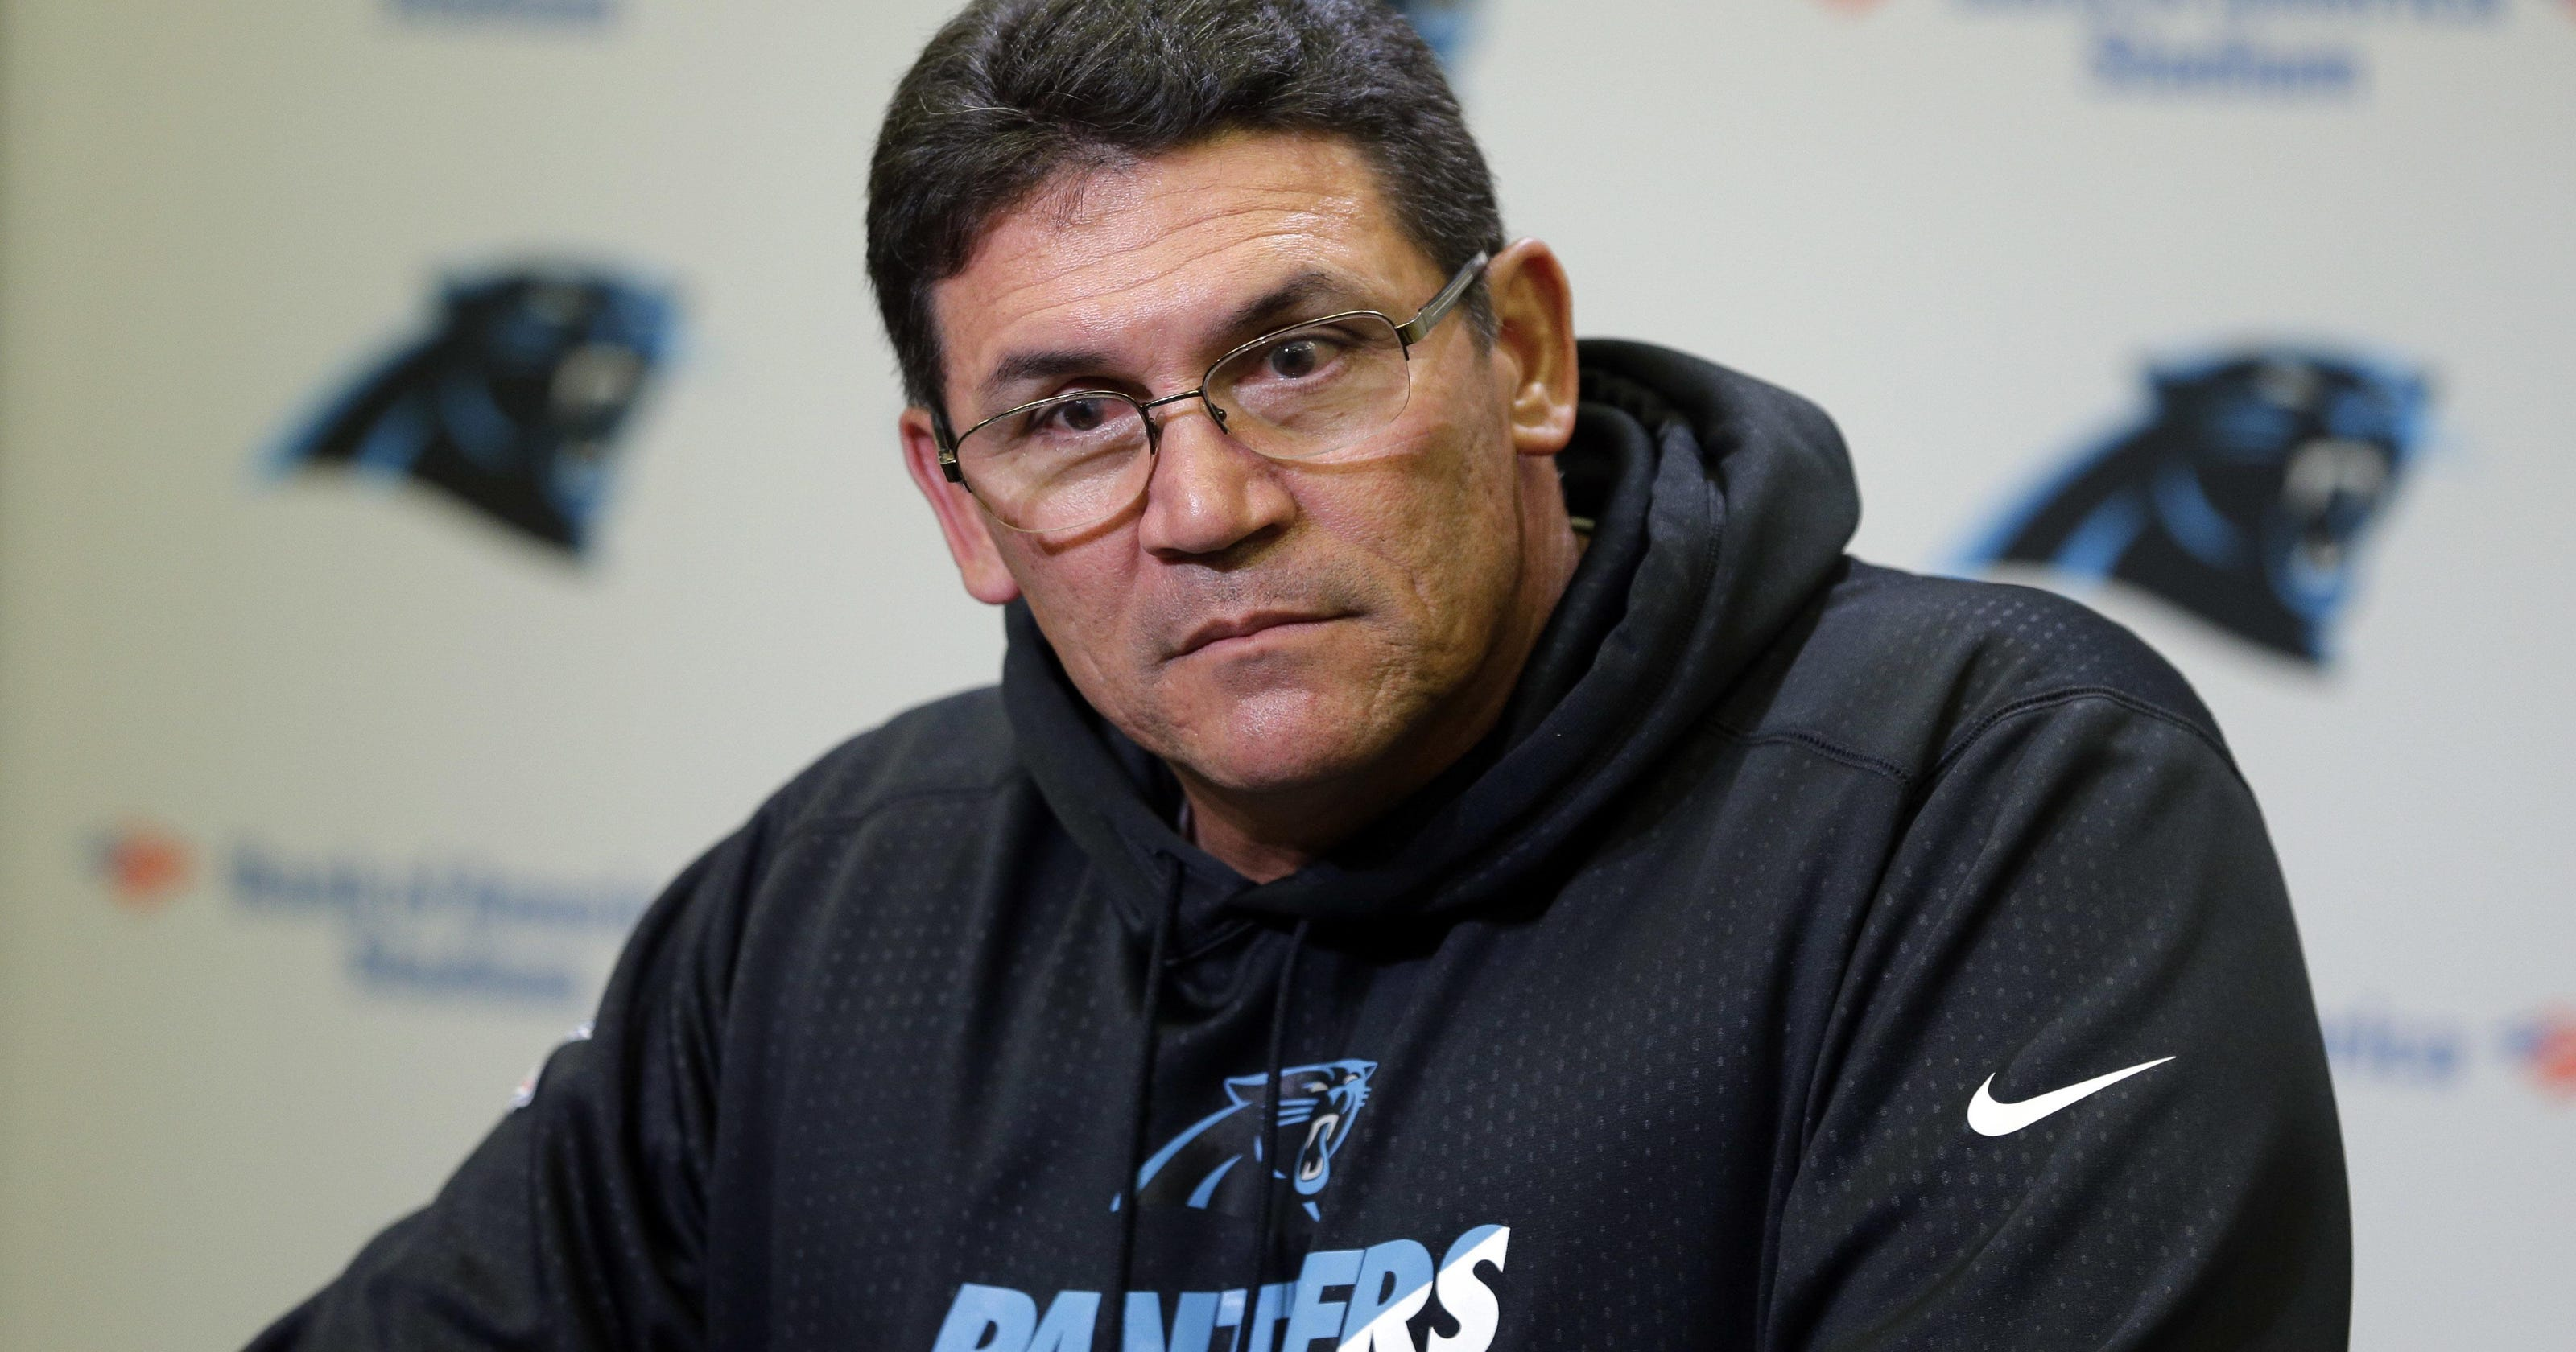 Rivera  NFL should consider ejecting players for  targeting  6cdfd8603